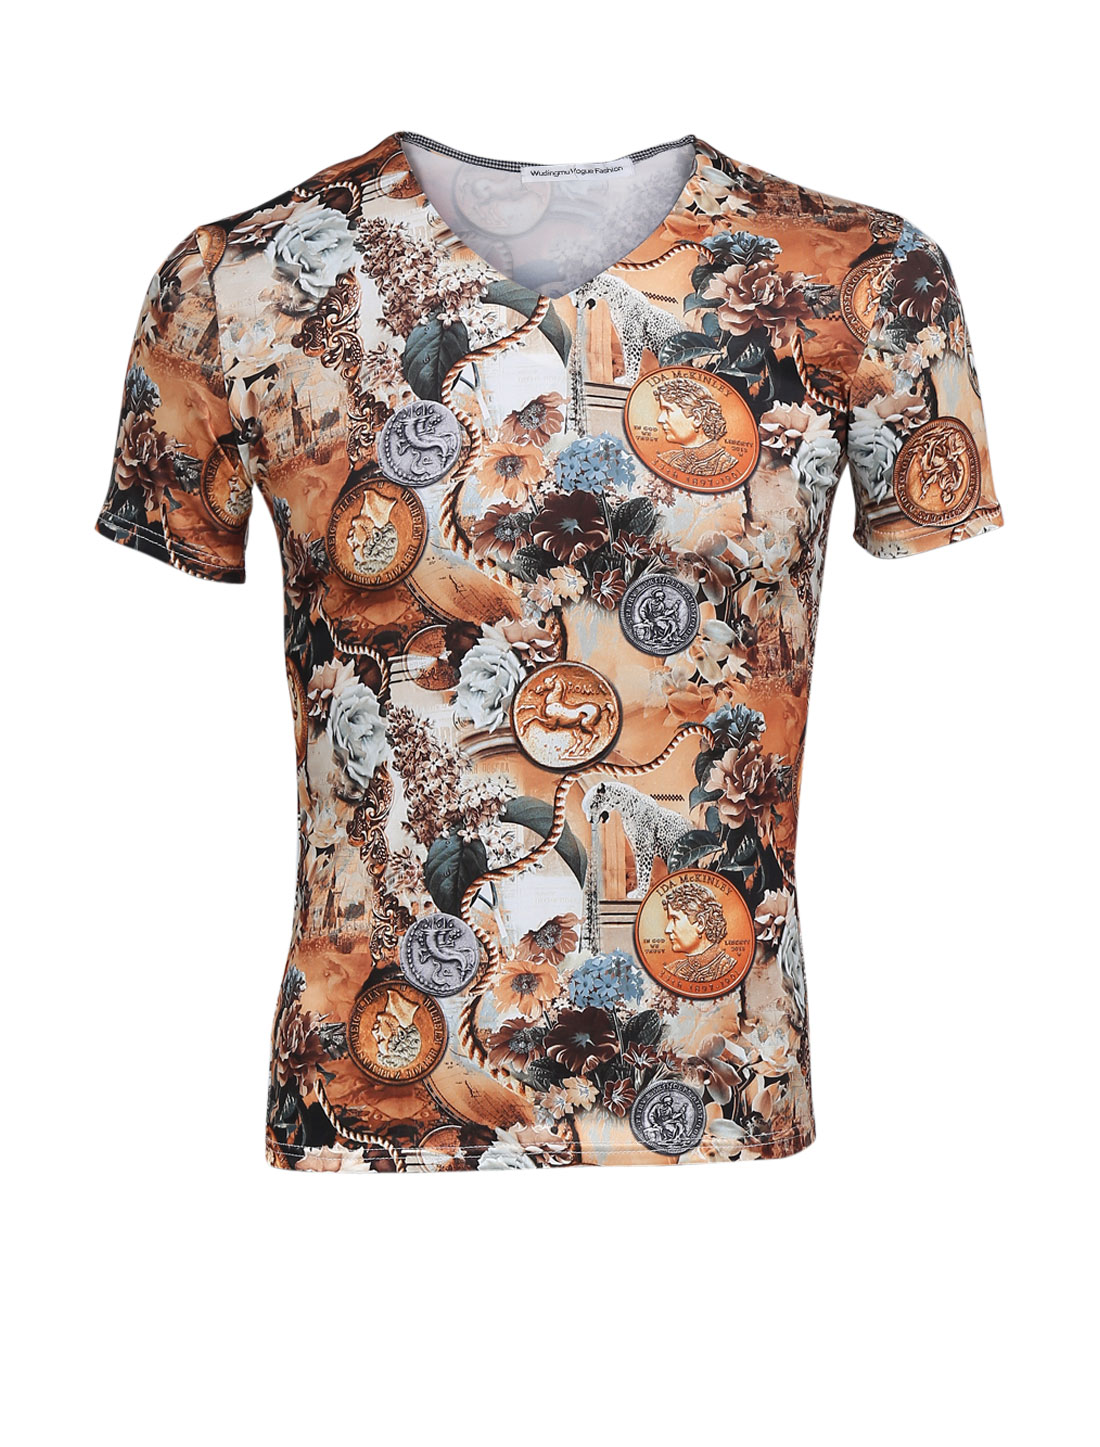 Man V Neck Short Sleeve Floral Coin Print Tee Shirt Brown M